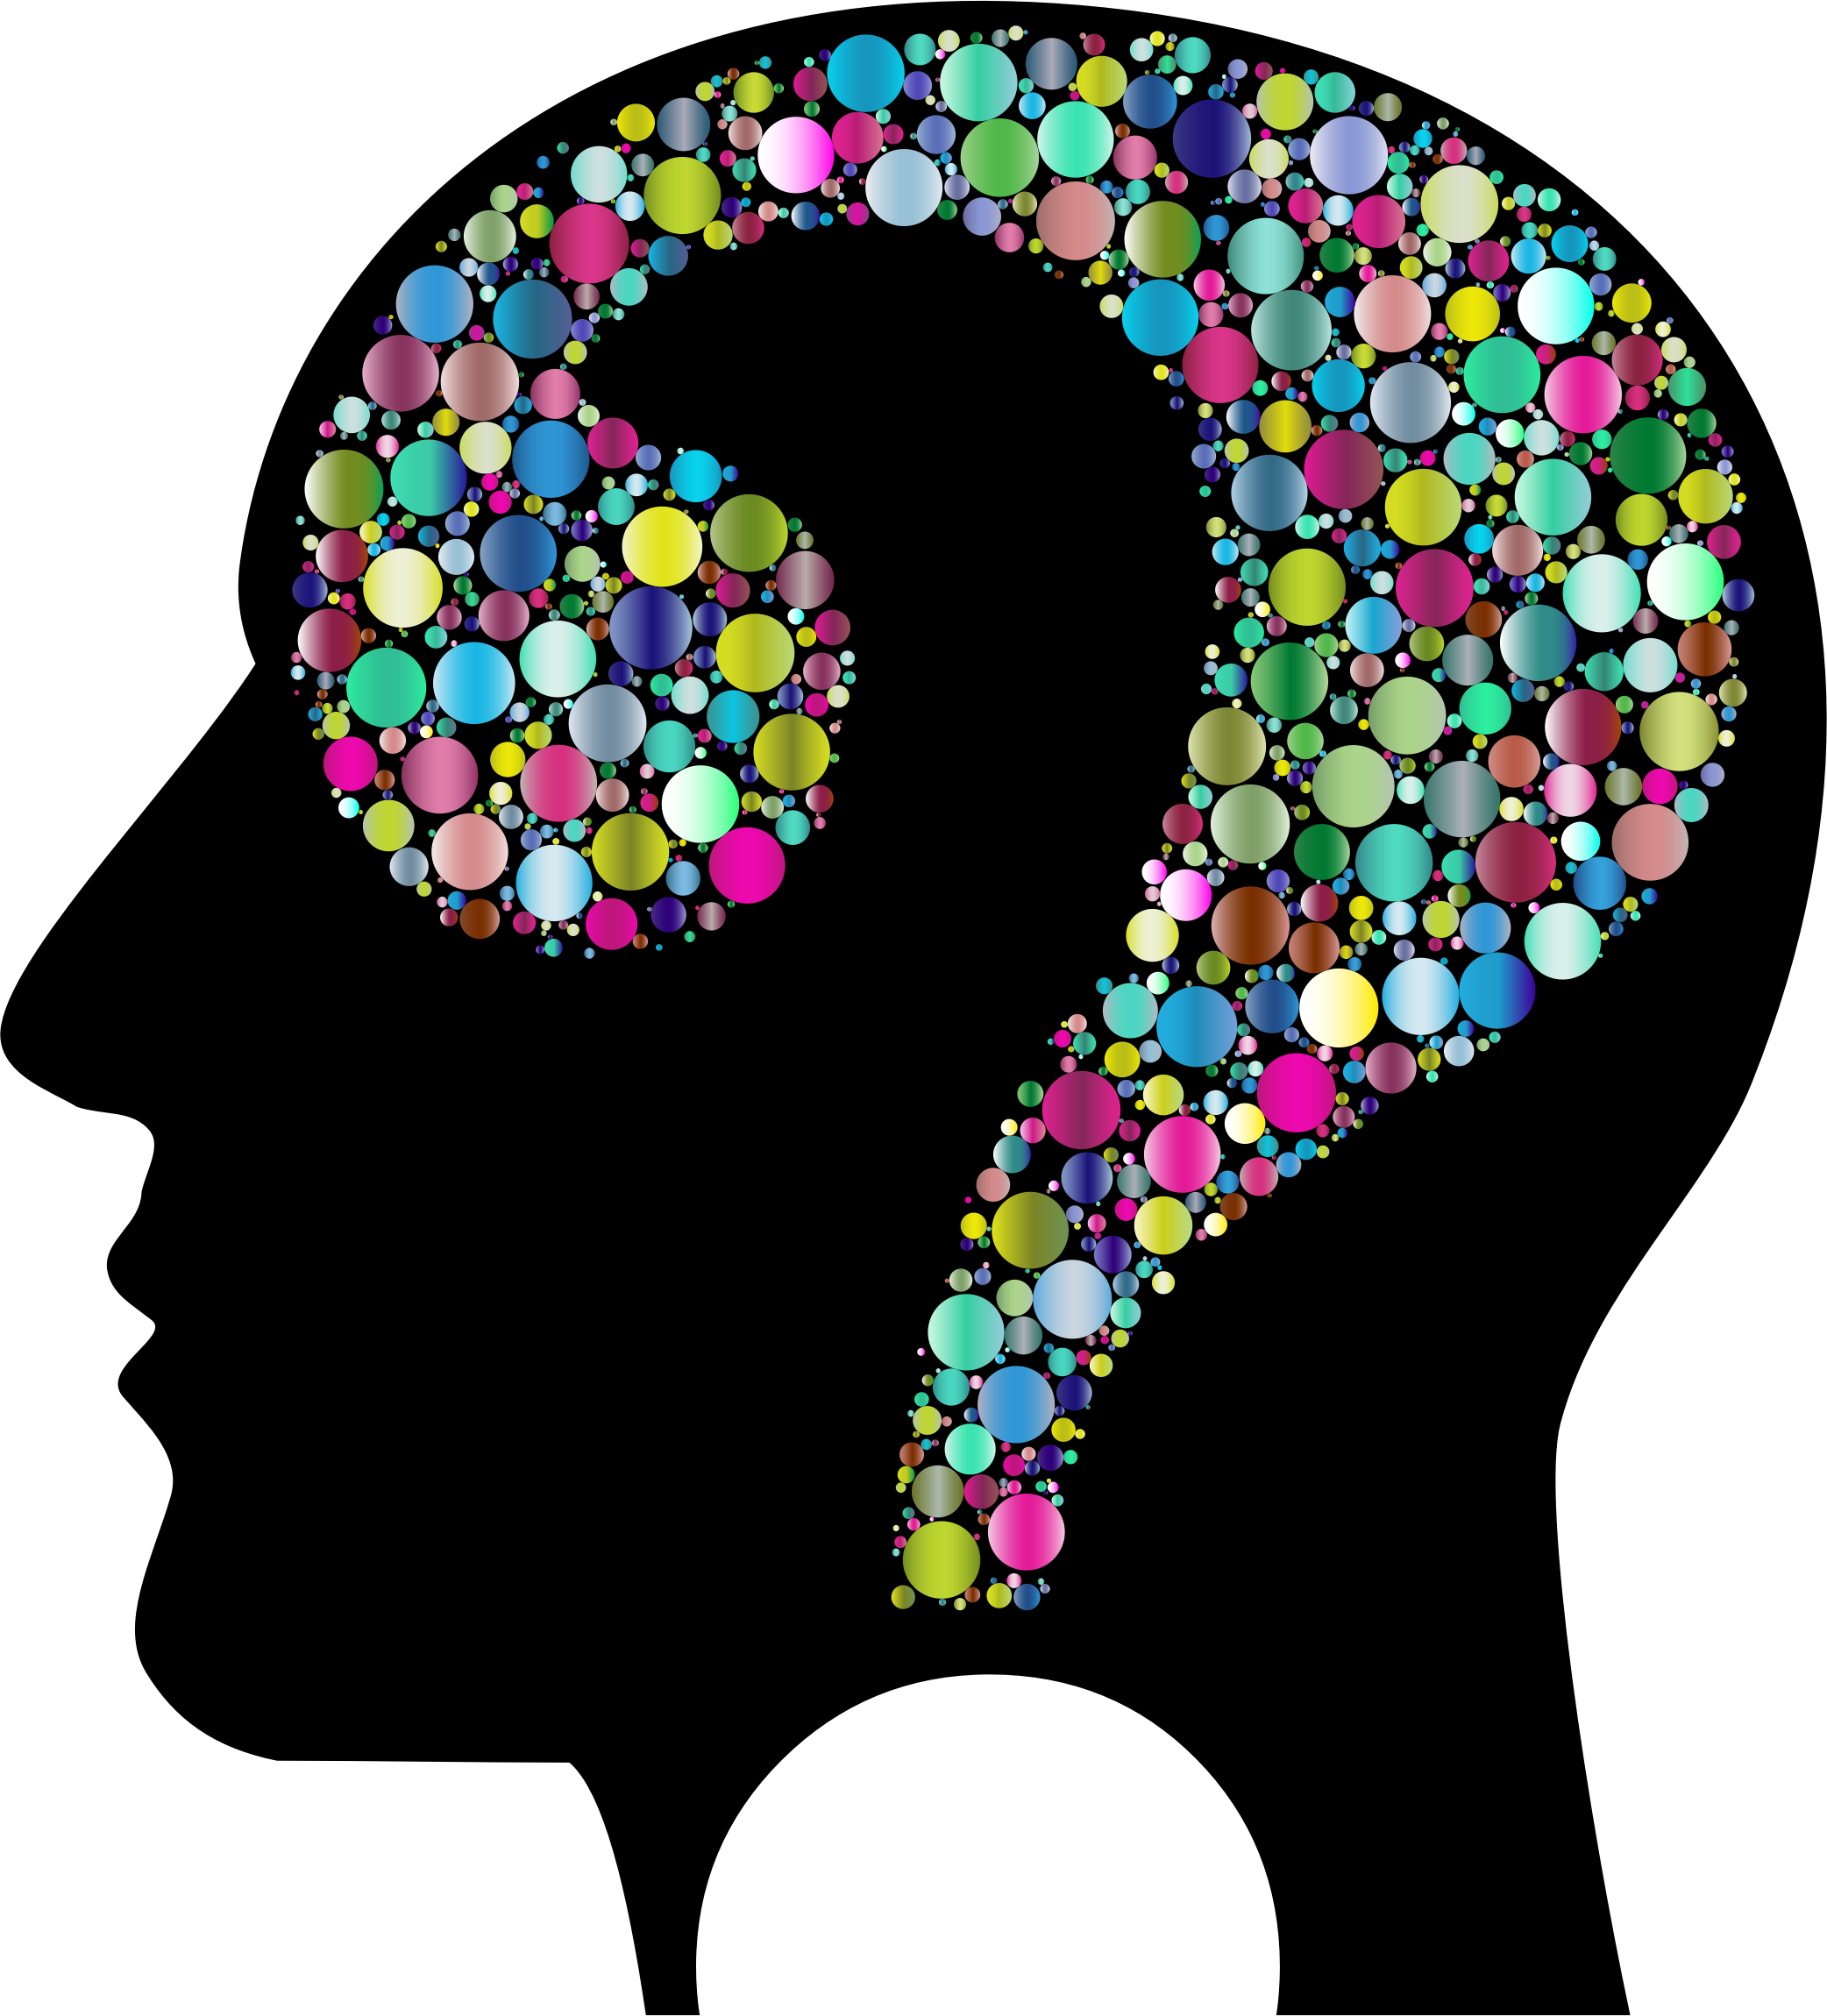 Colorful Question Head Circles 6 by GDJ